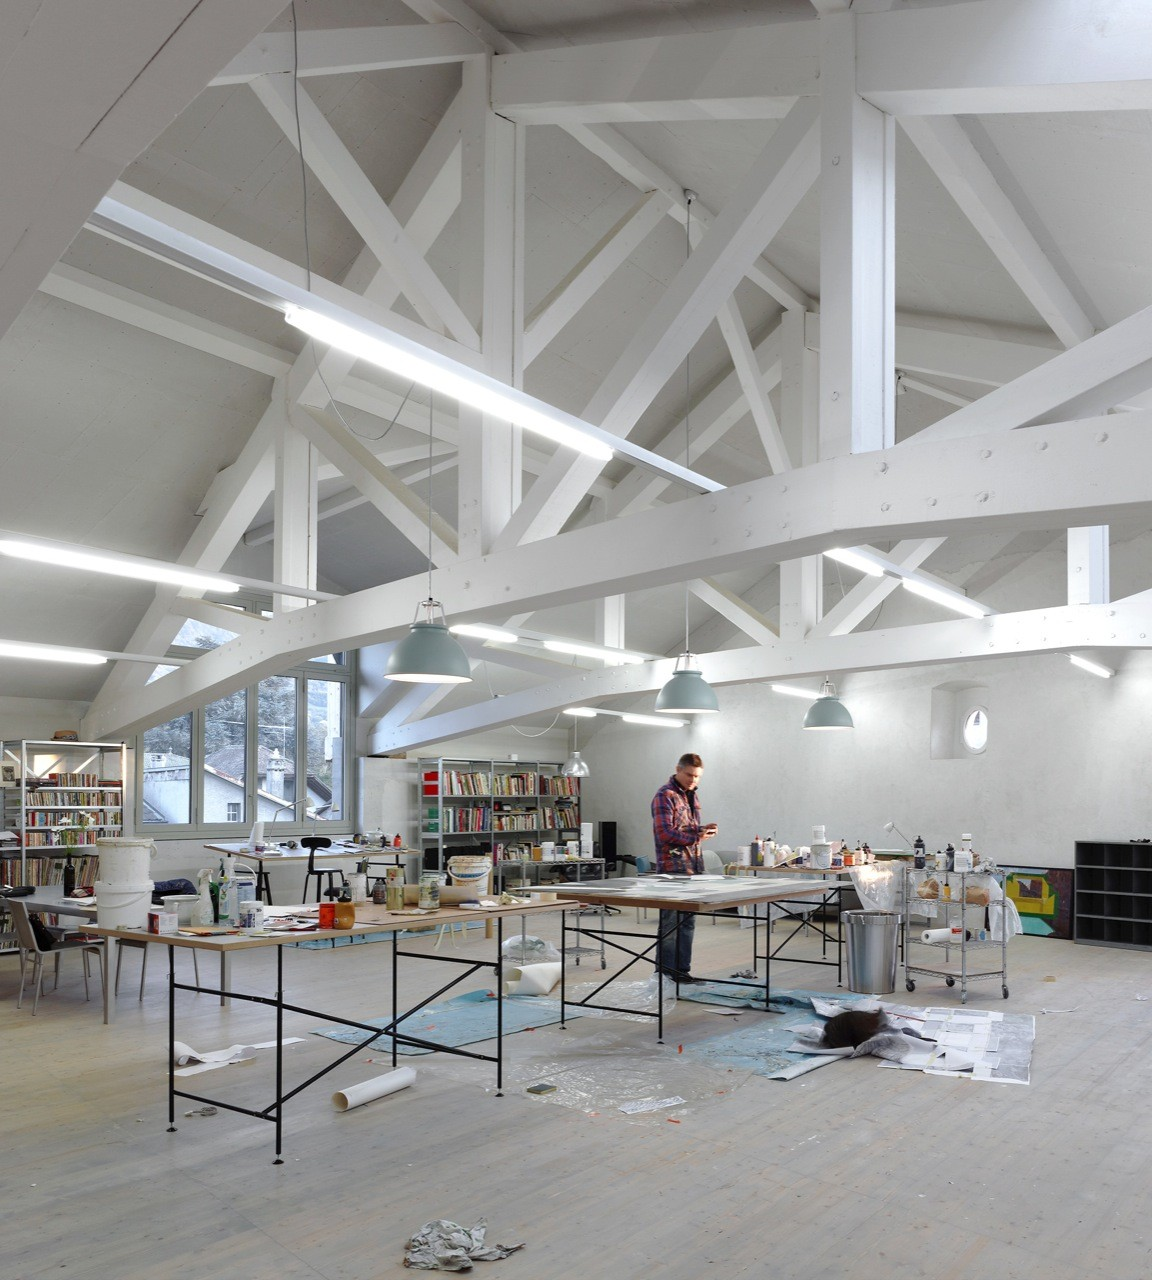 Studio in an Agricultural Building / Charles Pictet Architecte, © Thomas Jantscher